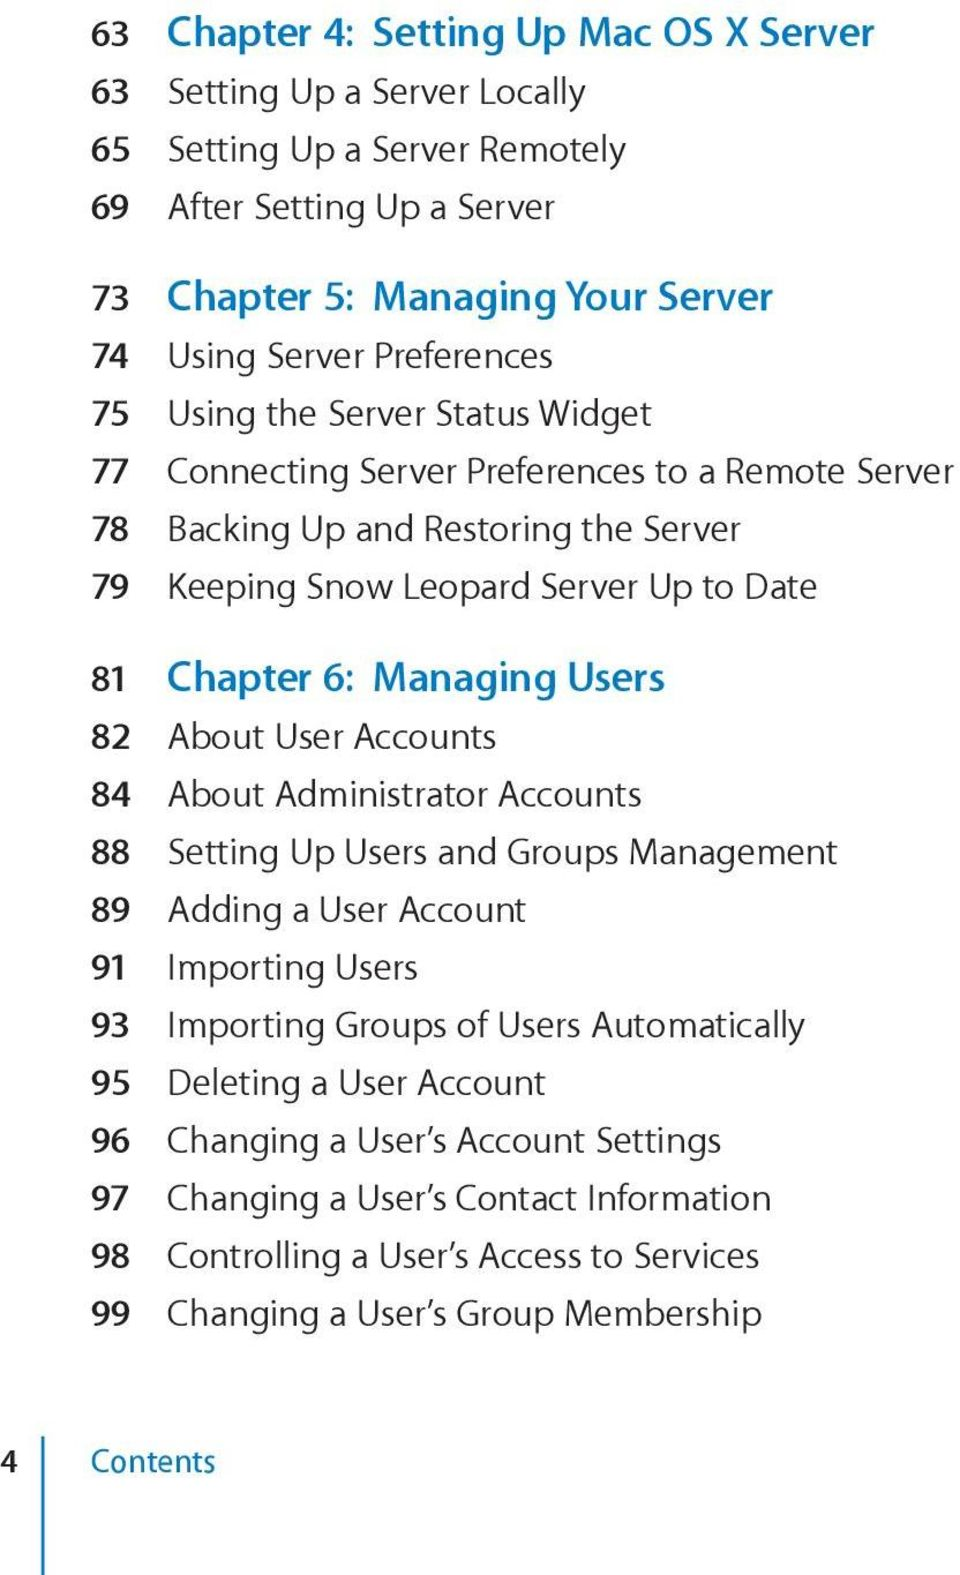 Managing Users 82 About User Accounts 84 About Administrator Accounts 88 Setting Up Users and Groups Management 89 Adding a User Account 91 Importing Users 93 Importing Groups of Users